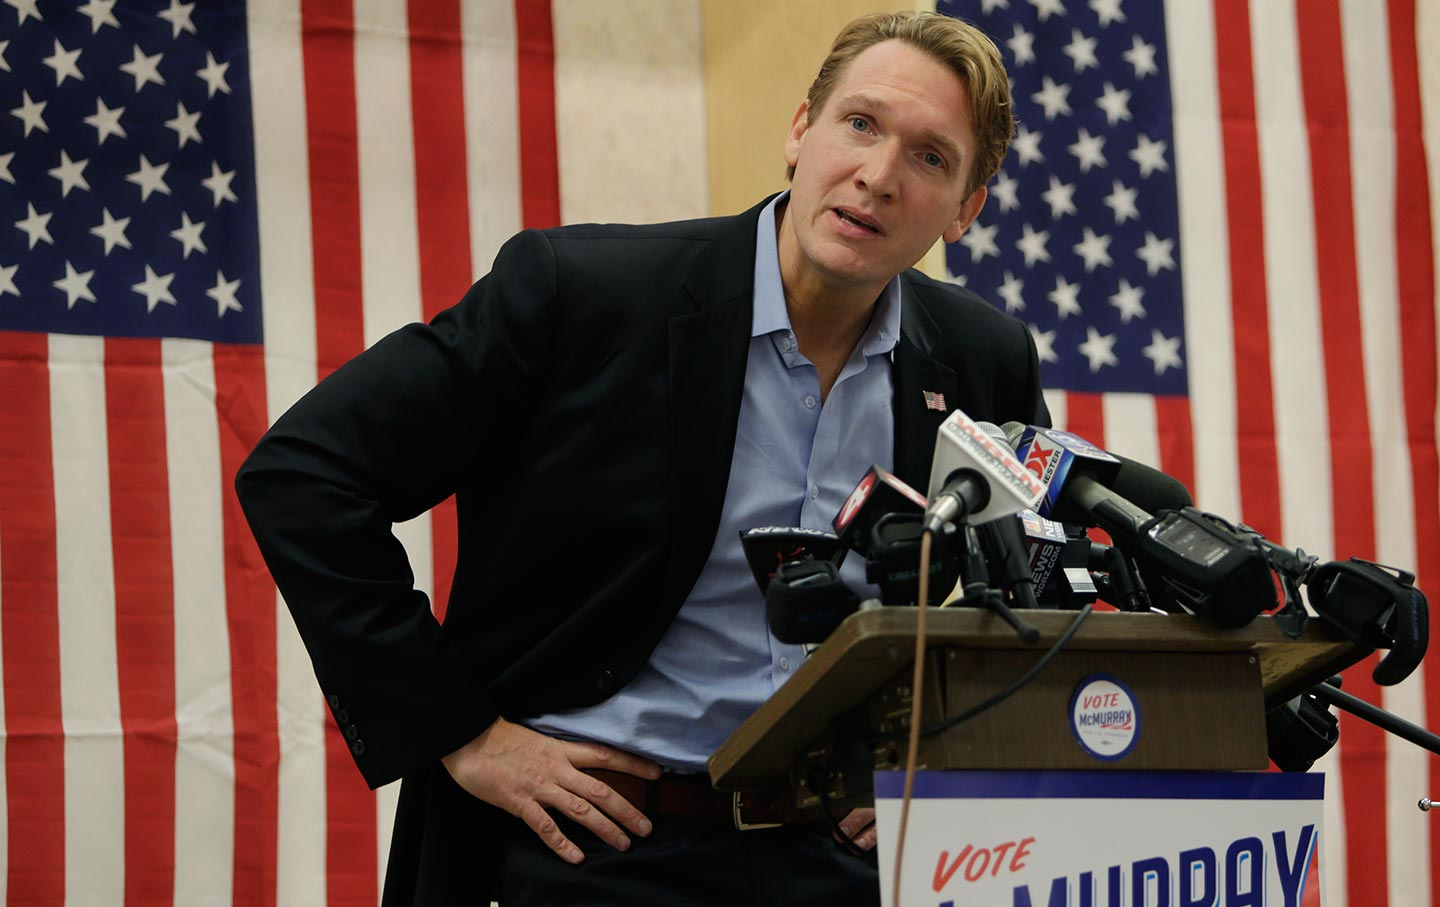 new-york-mcmurray-election-ap-img